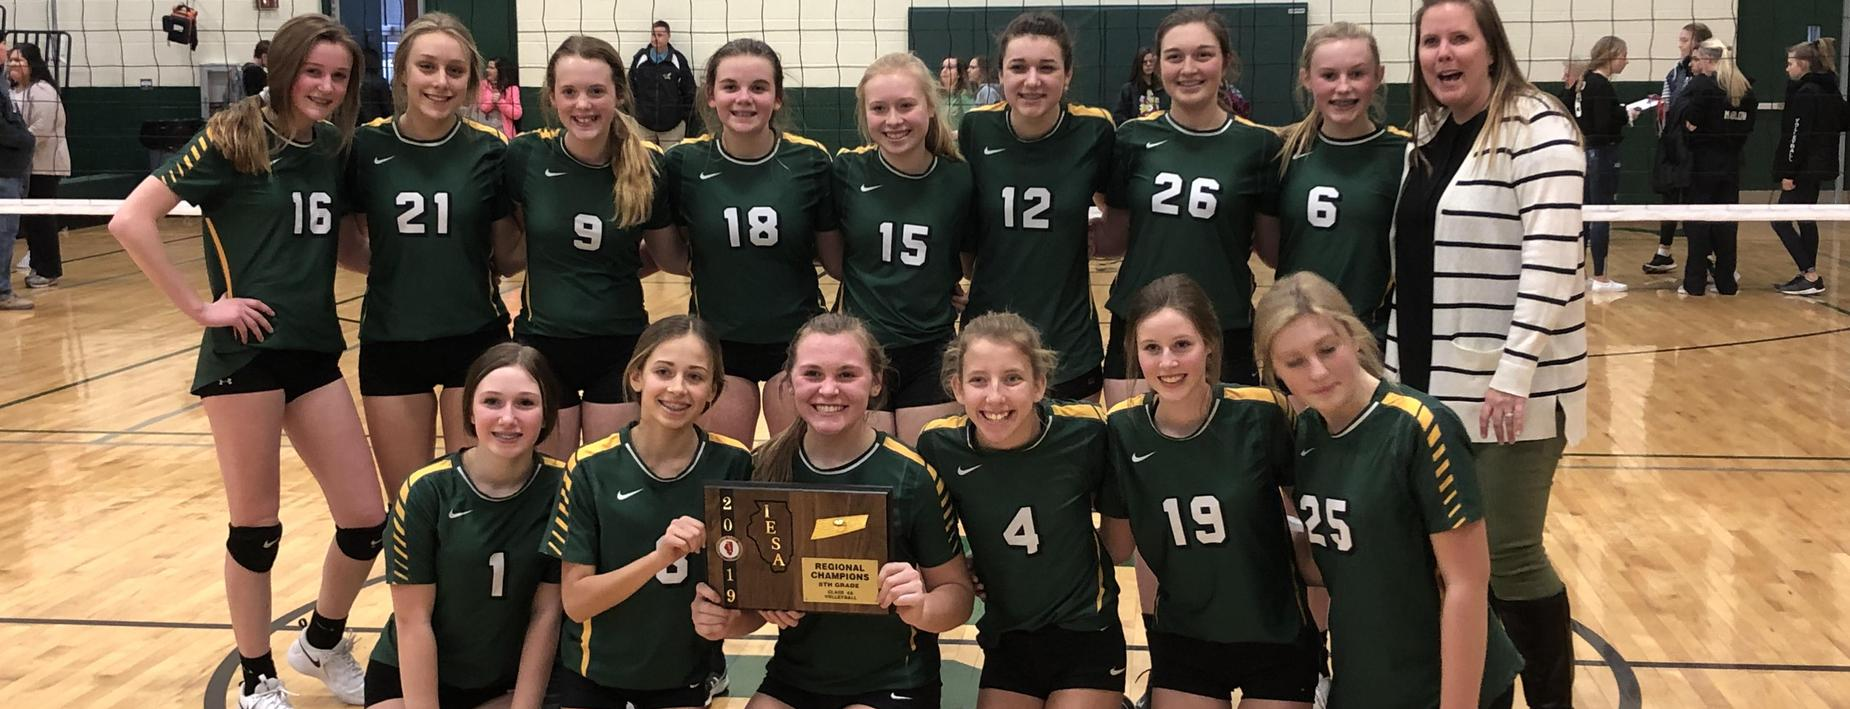 Sectional Champs in Volleyball